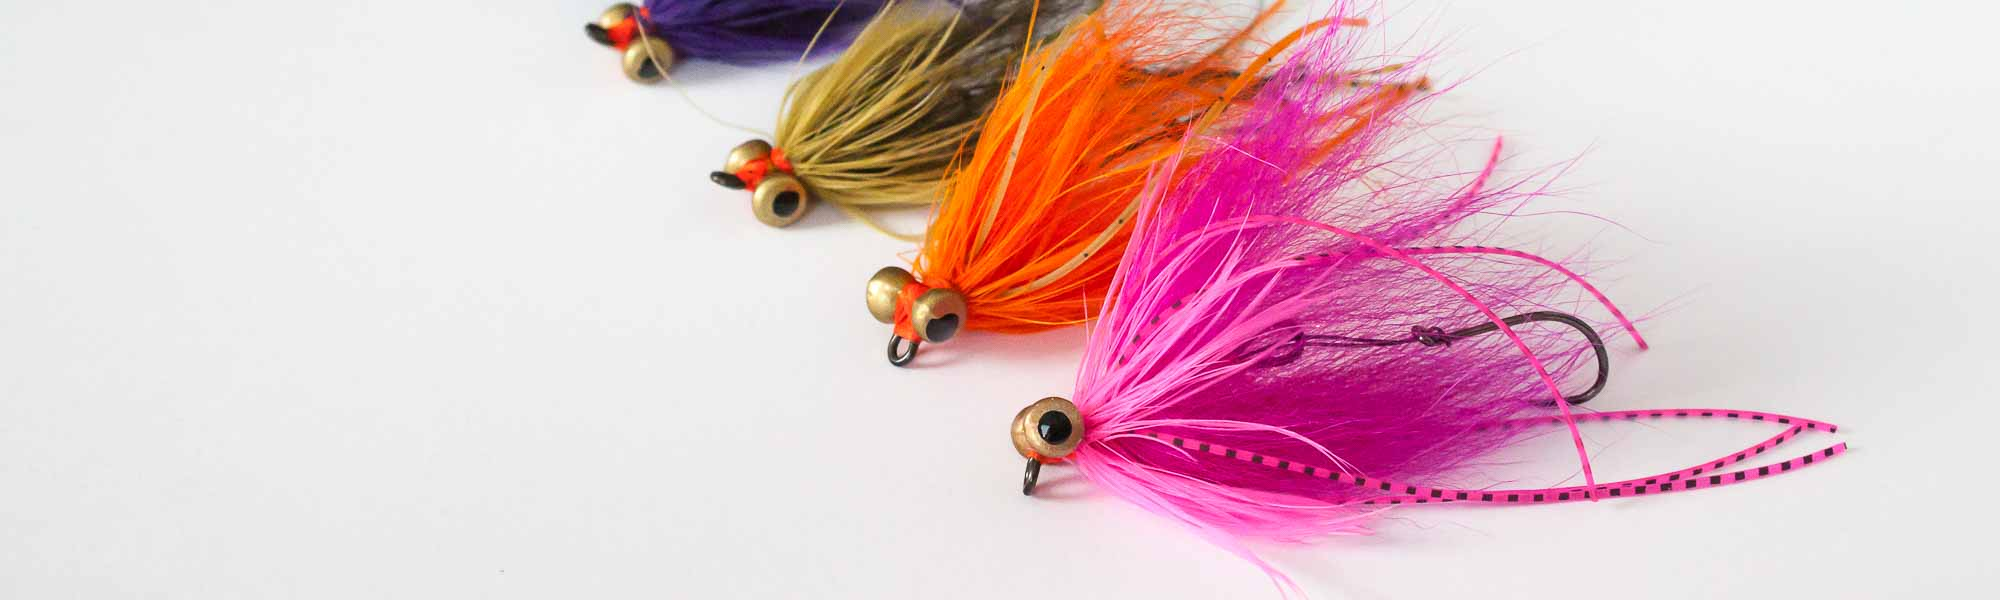 Streamer and Spey Flies - Micro Intruders